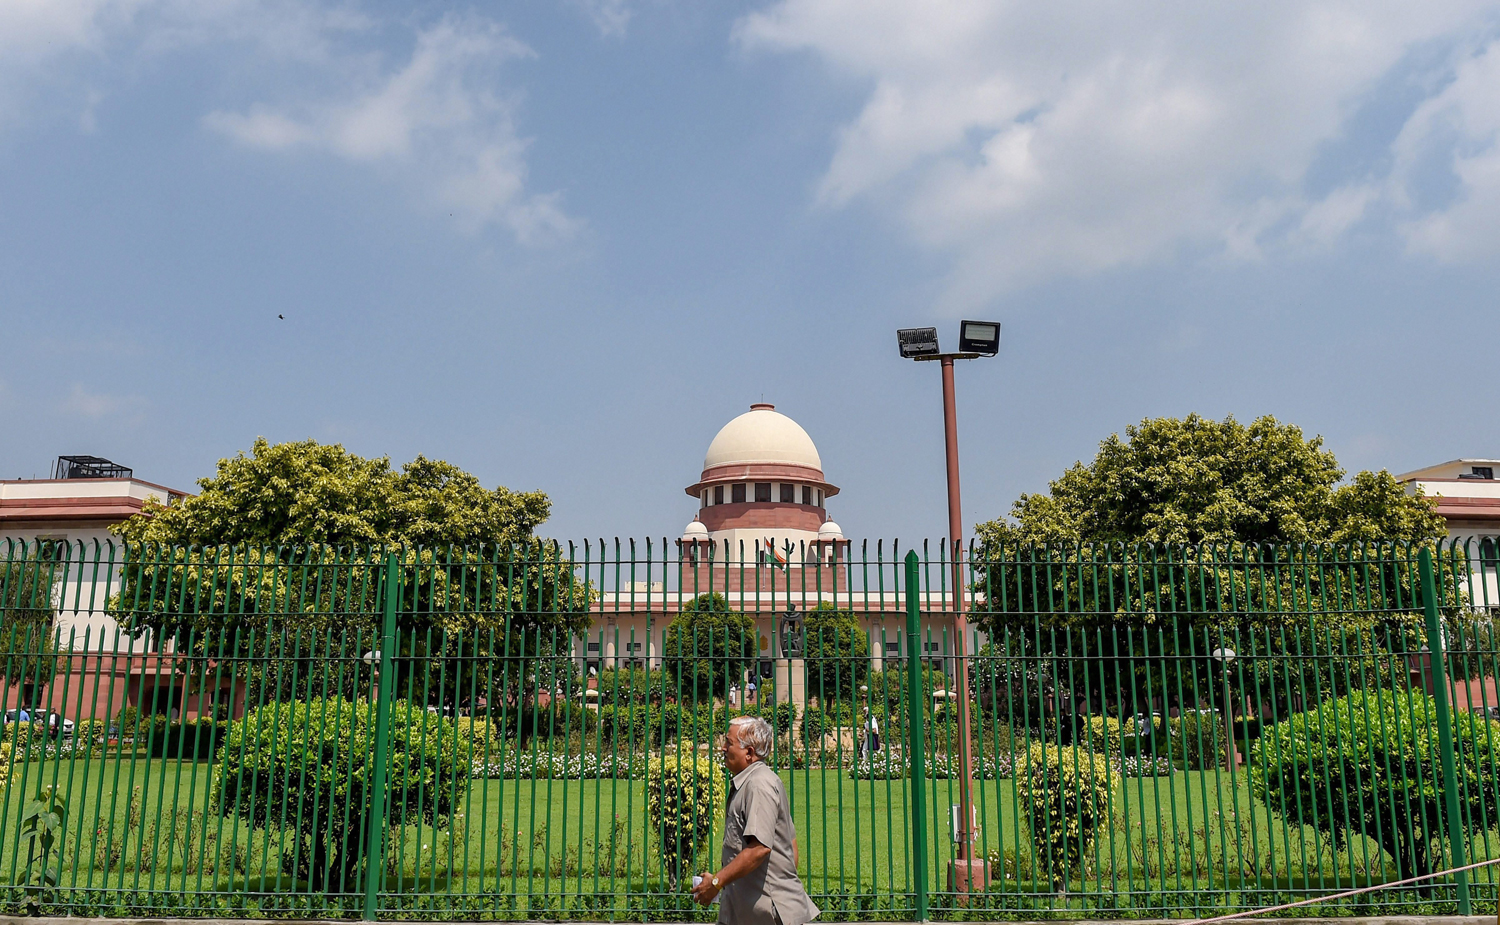 The Supreme court, which is hearing a PIL seeking a probe into as many as 1,528 cases of alleged extra-judicial killings in Manipur, had on July 14 last year constituted the SIT and ordered lodging of FIRs and probe into them